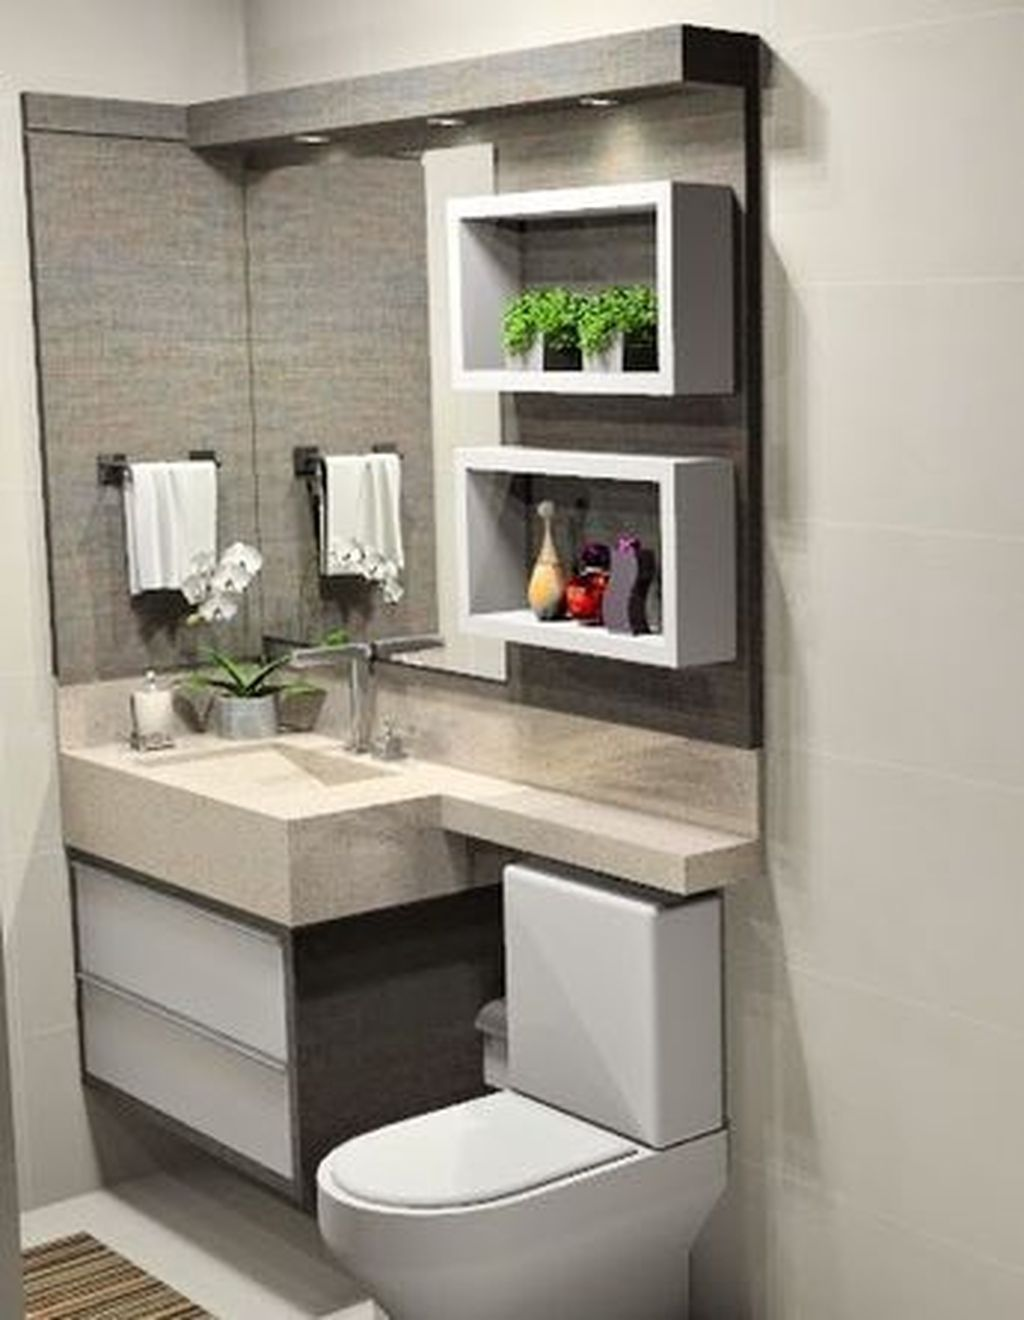 Nice 20 Elegant And Simple Bathroom Designs For Small Spaces More At Https Www Trendecor Modern Small Bathrooms Small Bathroom Decor Small Bathroom Remodel